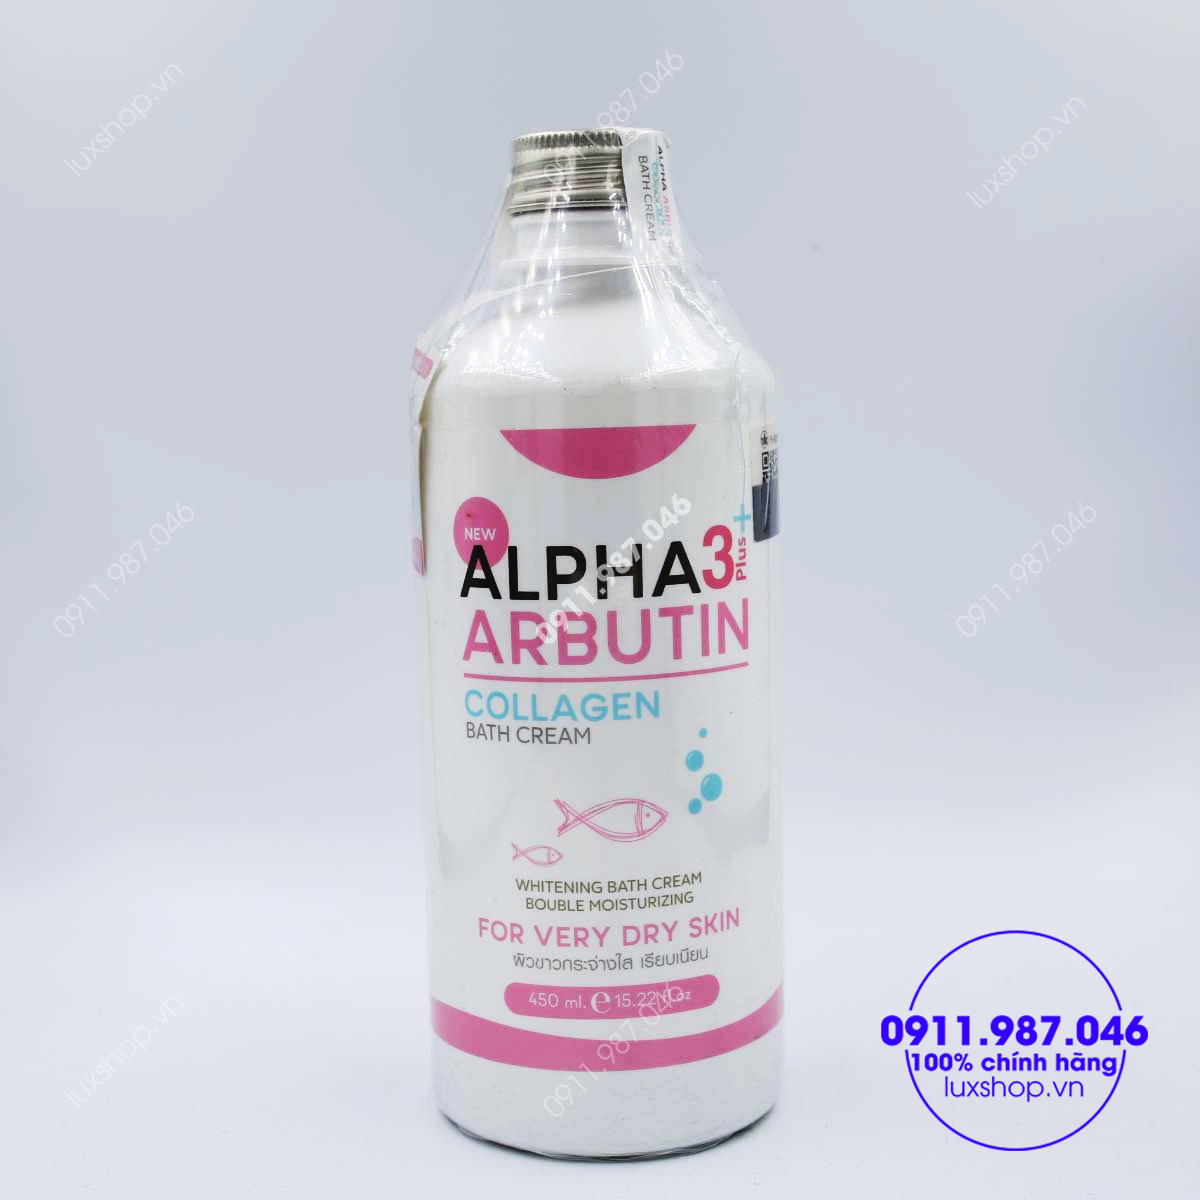 sua-tam-trang-da-alpha-arbutin-3-plus-collagen-bath-cream-450ml-thai-lan